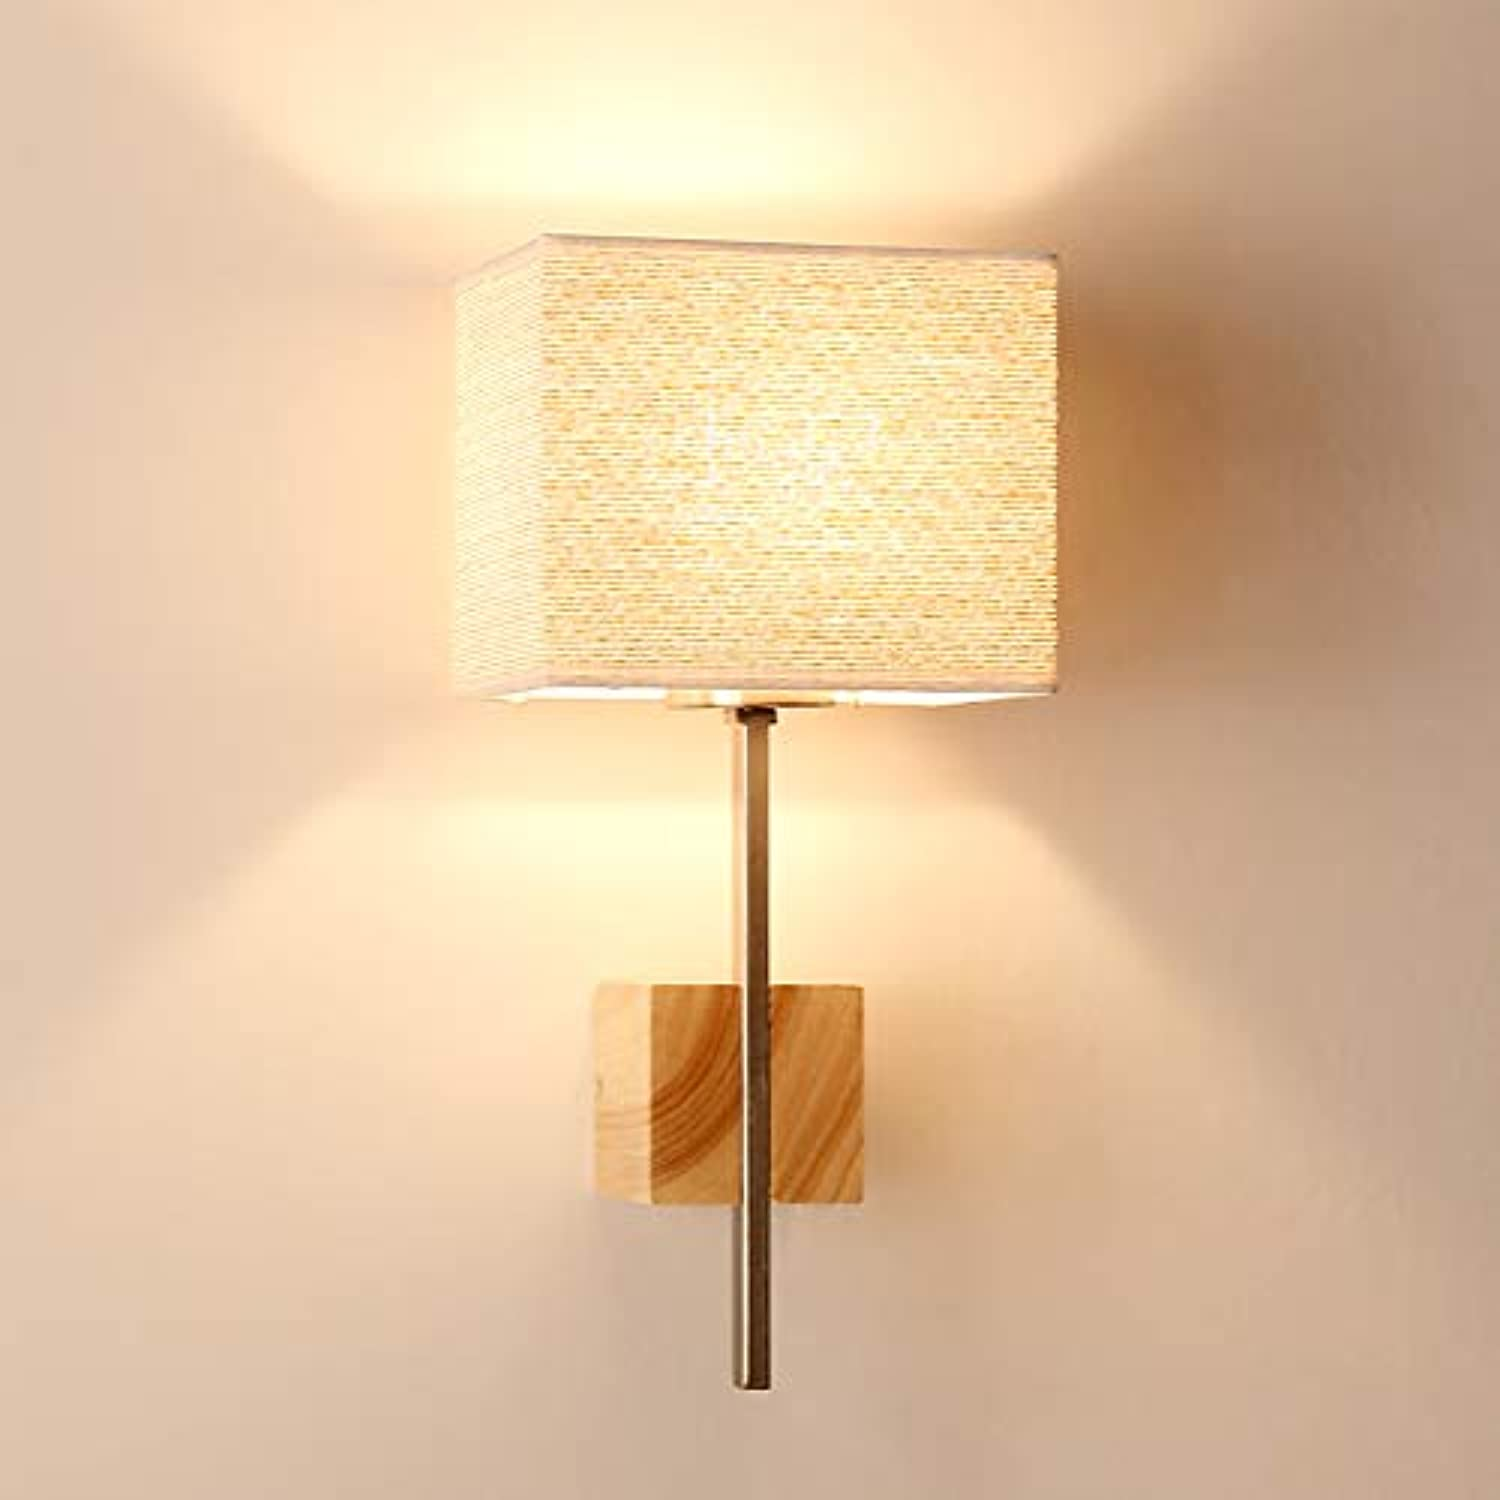 AGECC Simple Log Wall Lamp Garden New Bedroom Bedside Modern Living Room Study Aisle Stairs. B